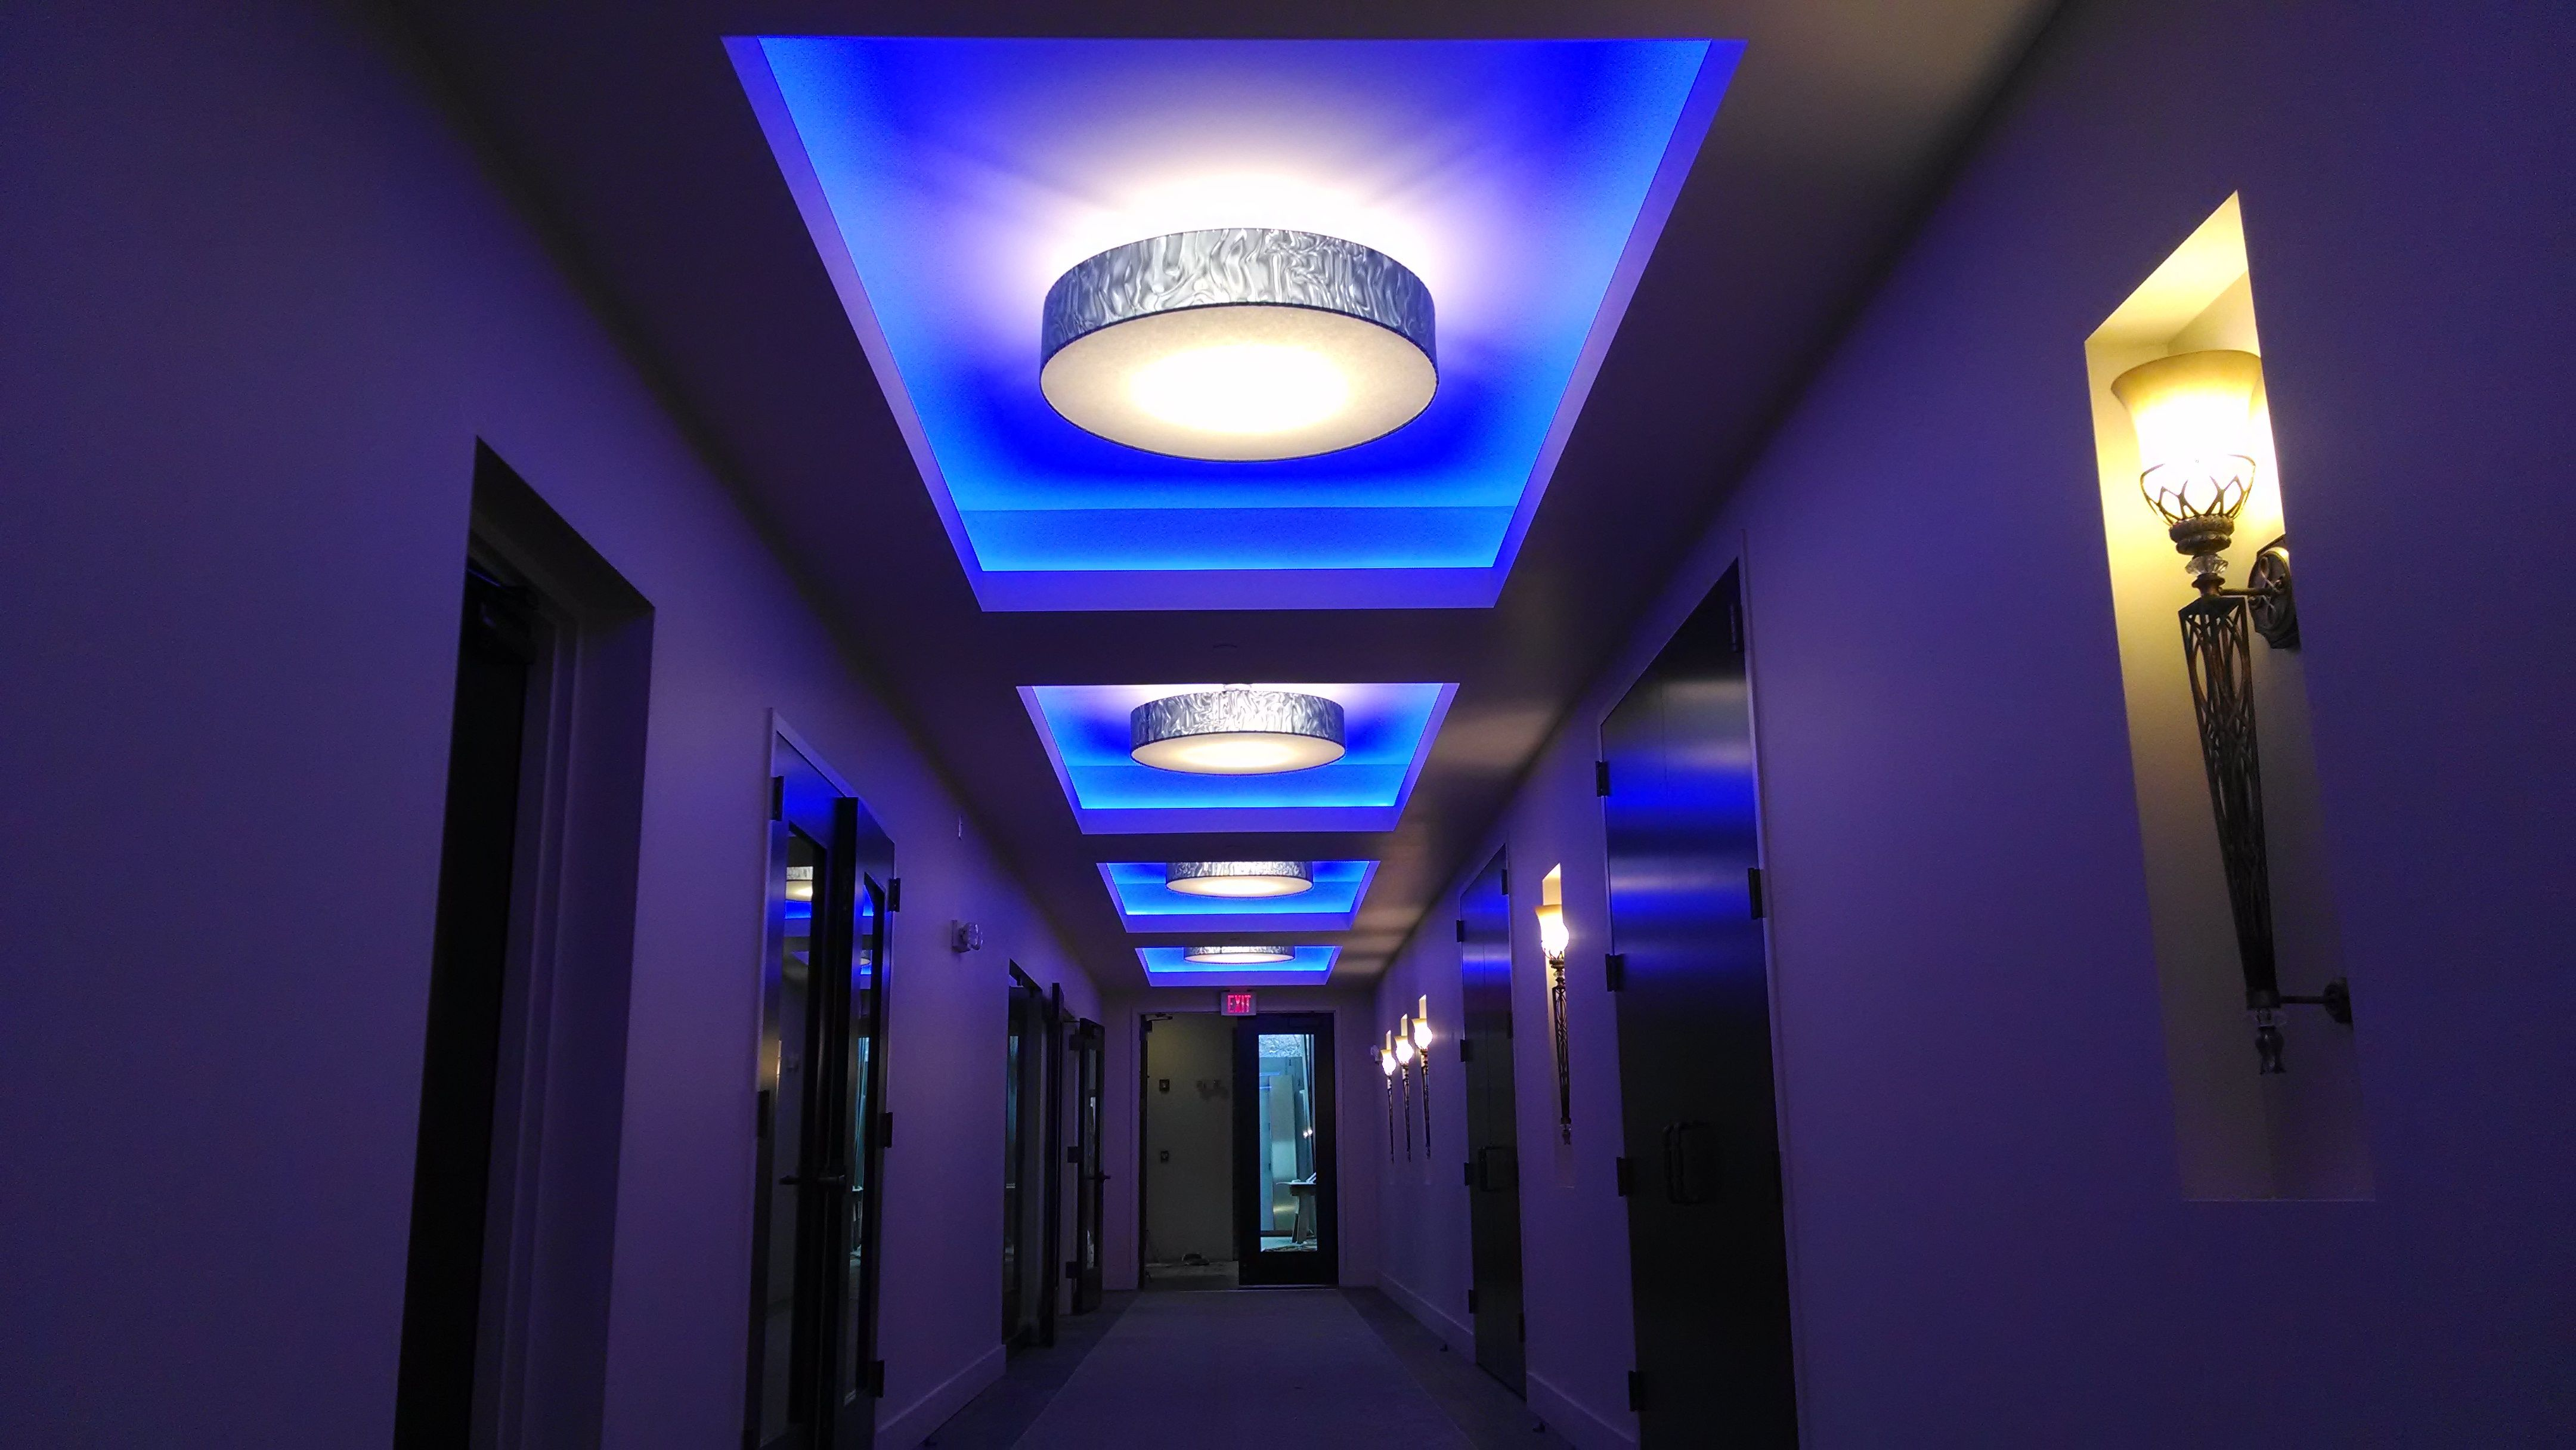 Custom Led Interior Lighting Job Change Colors And Control With An Ipad Citygrill Rochester Ny